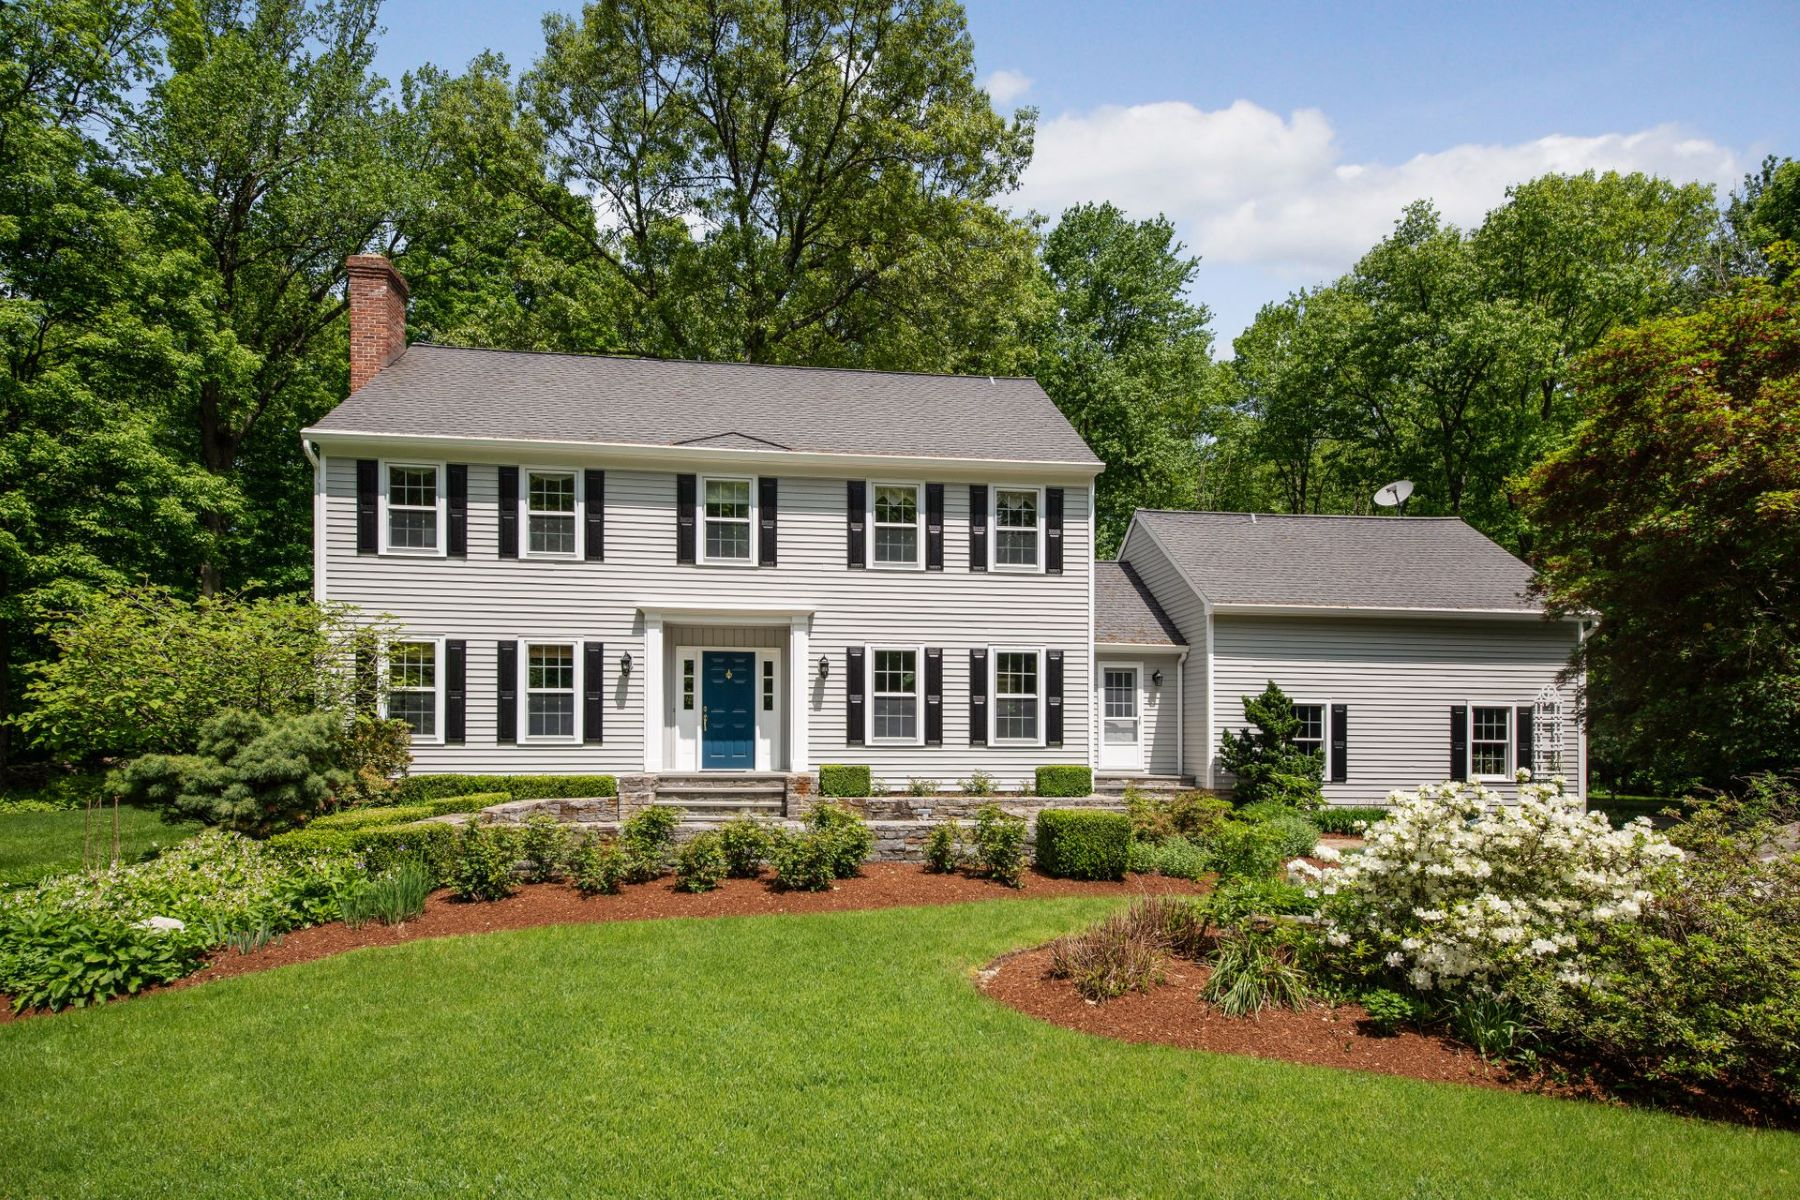 Single Family Homes for Sale at Fabulous Farmingville Colonial 30 Banks Hill Place Ridgefield, Connecticut 06877 United States